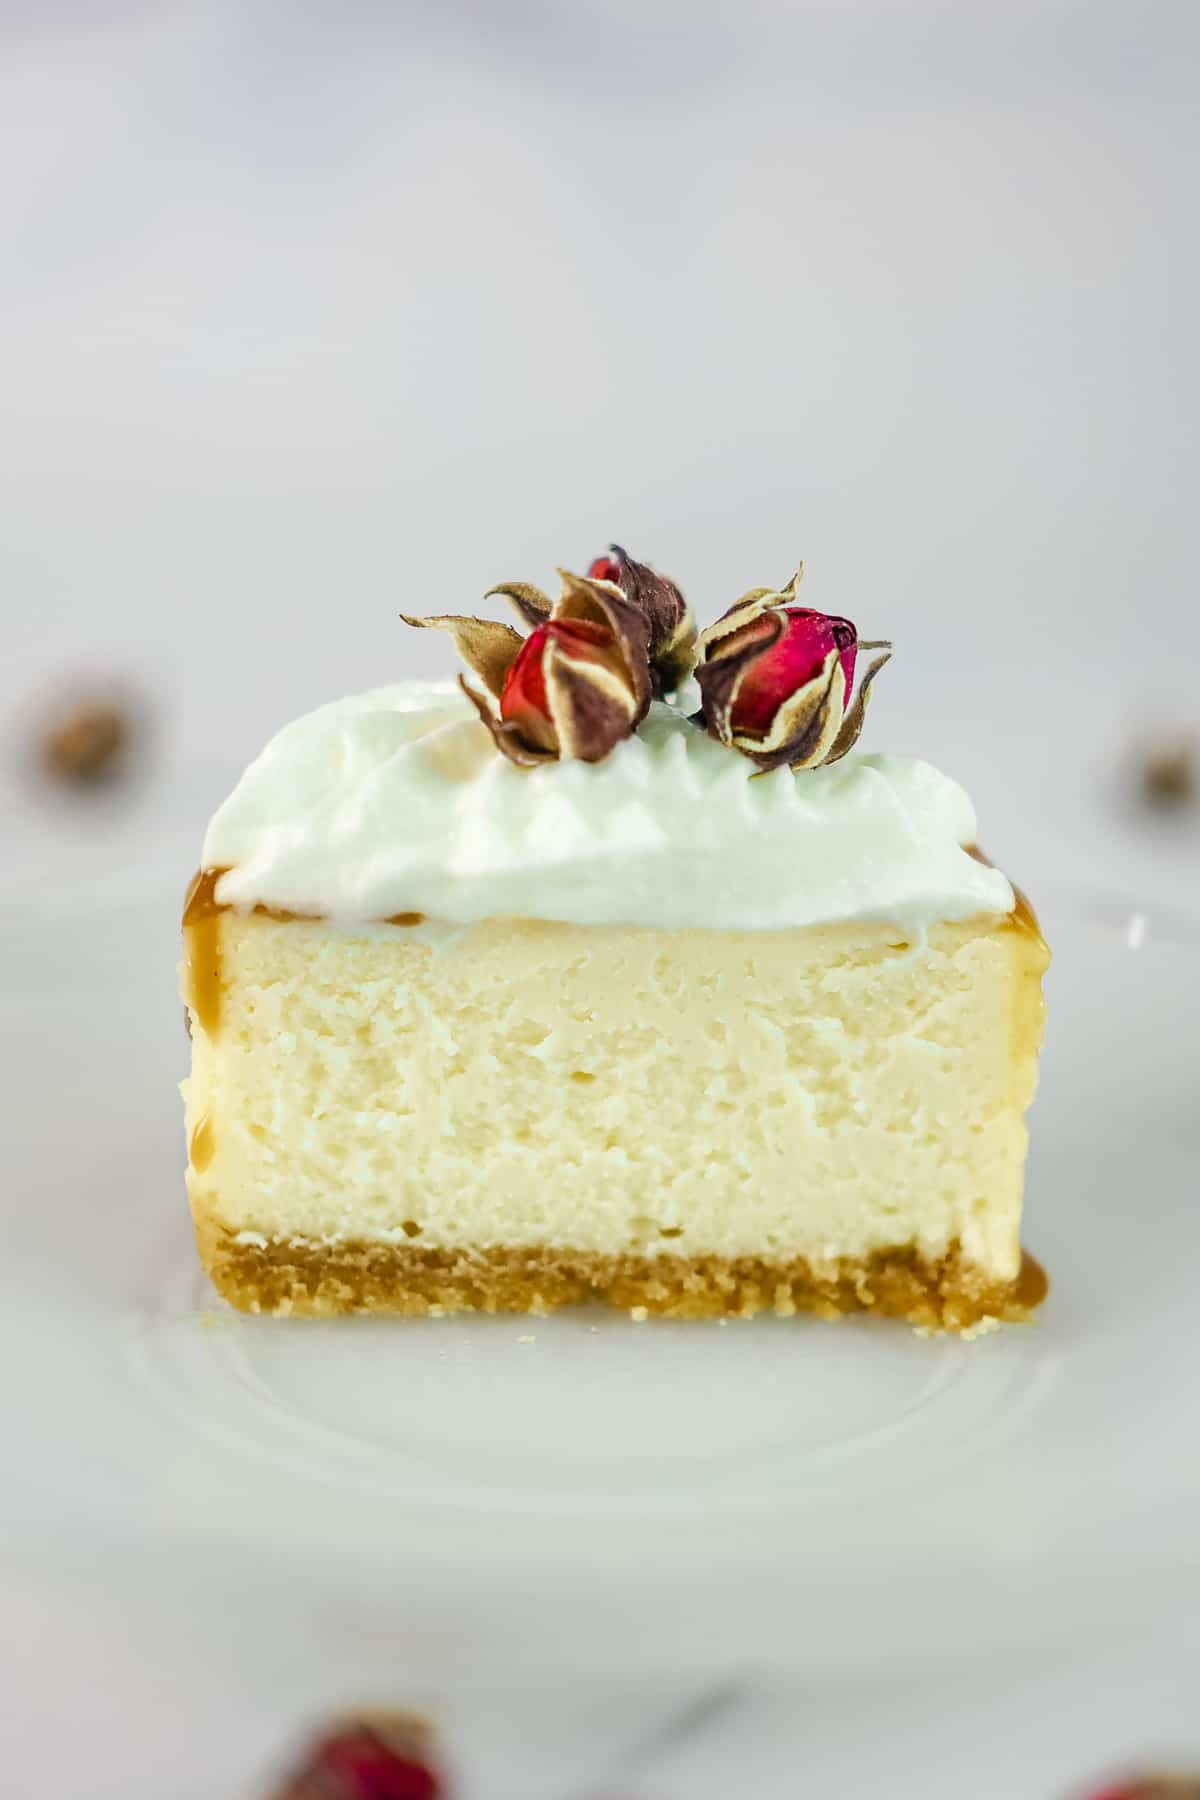 A small round cheesecake cut into half. Cake is topped with cream and dried rose buds